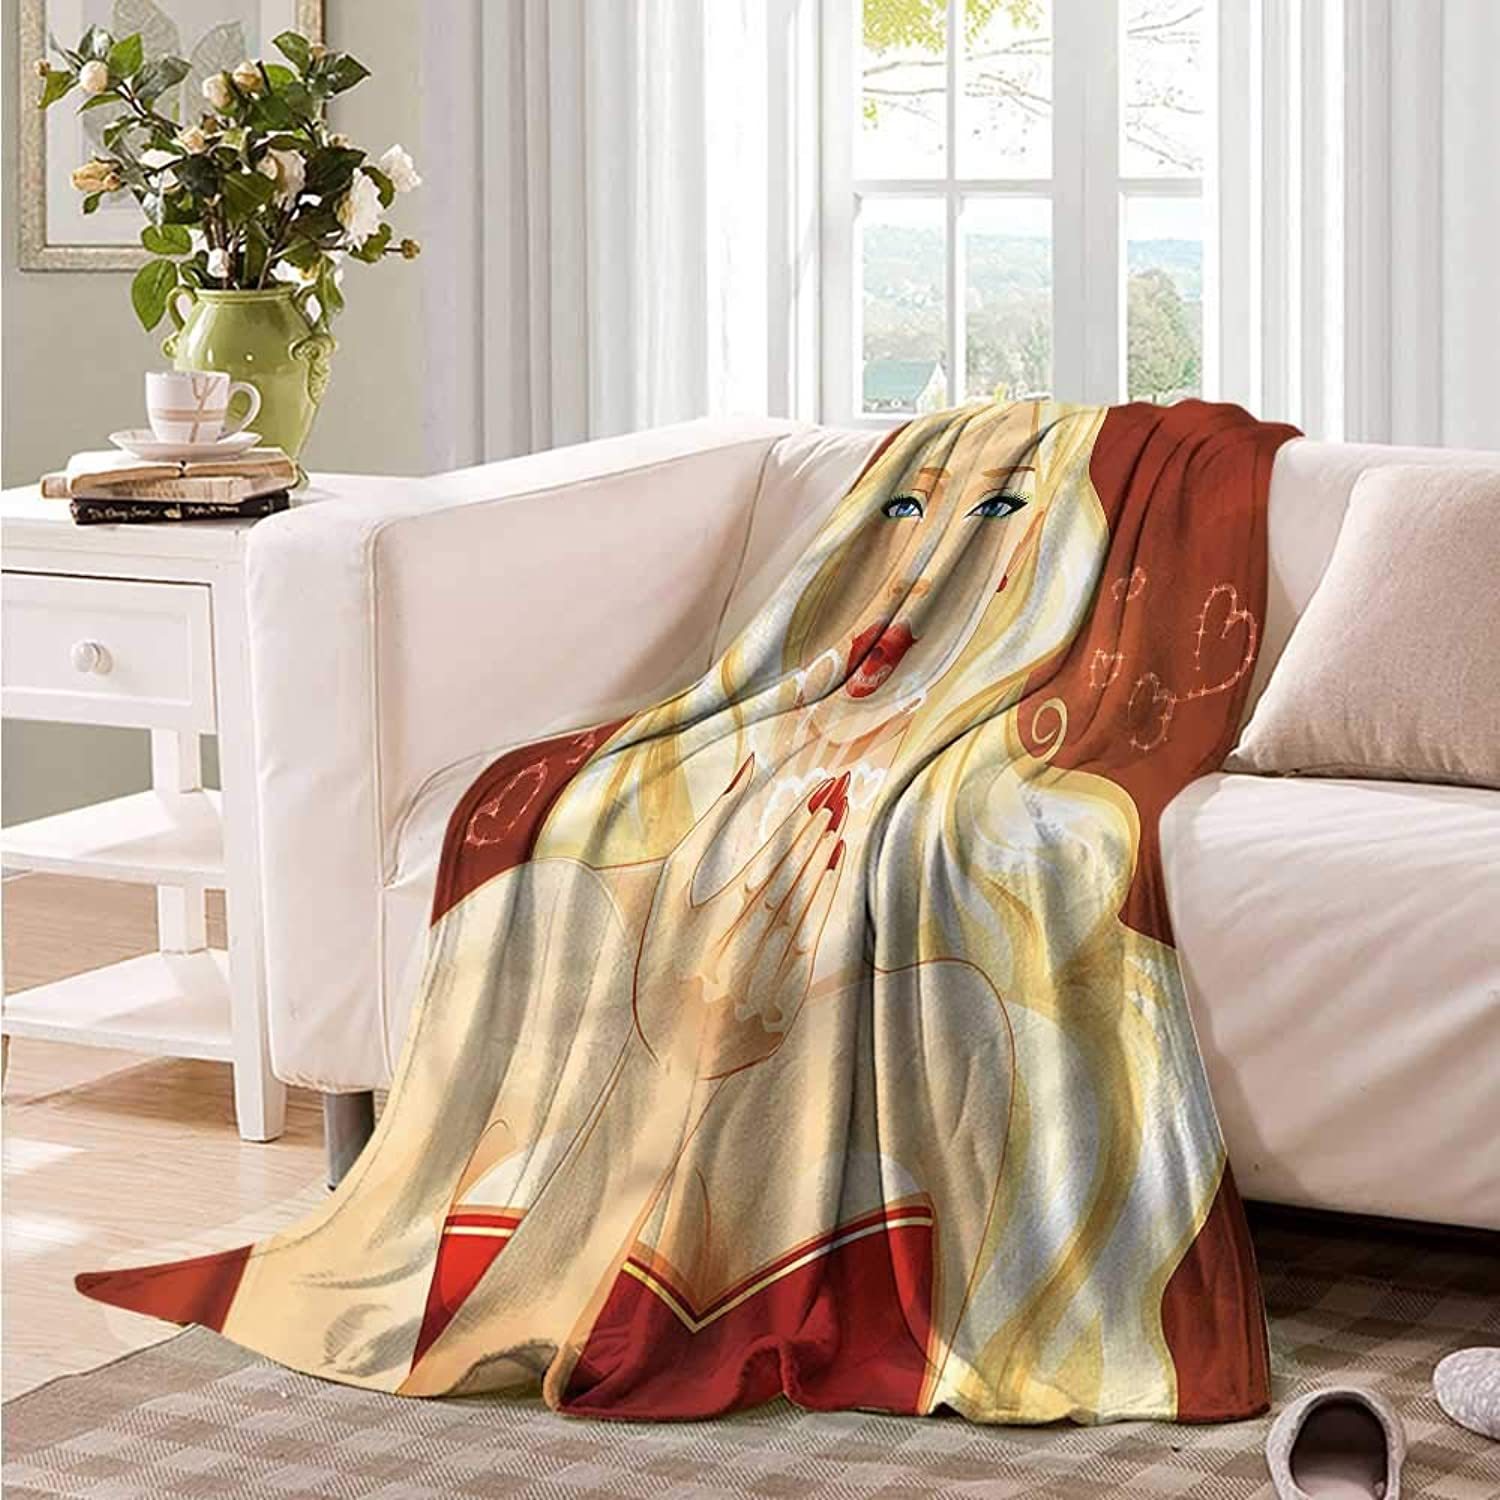 Oncegod Beds Blanket Kiss Young Blonde Woman Kisses Sofa Warm Bed 60  W x 51  L